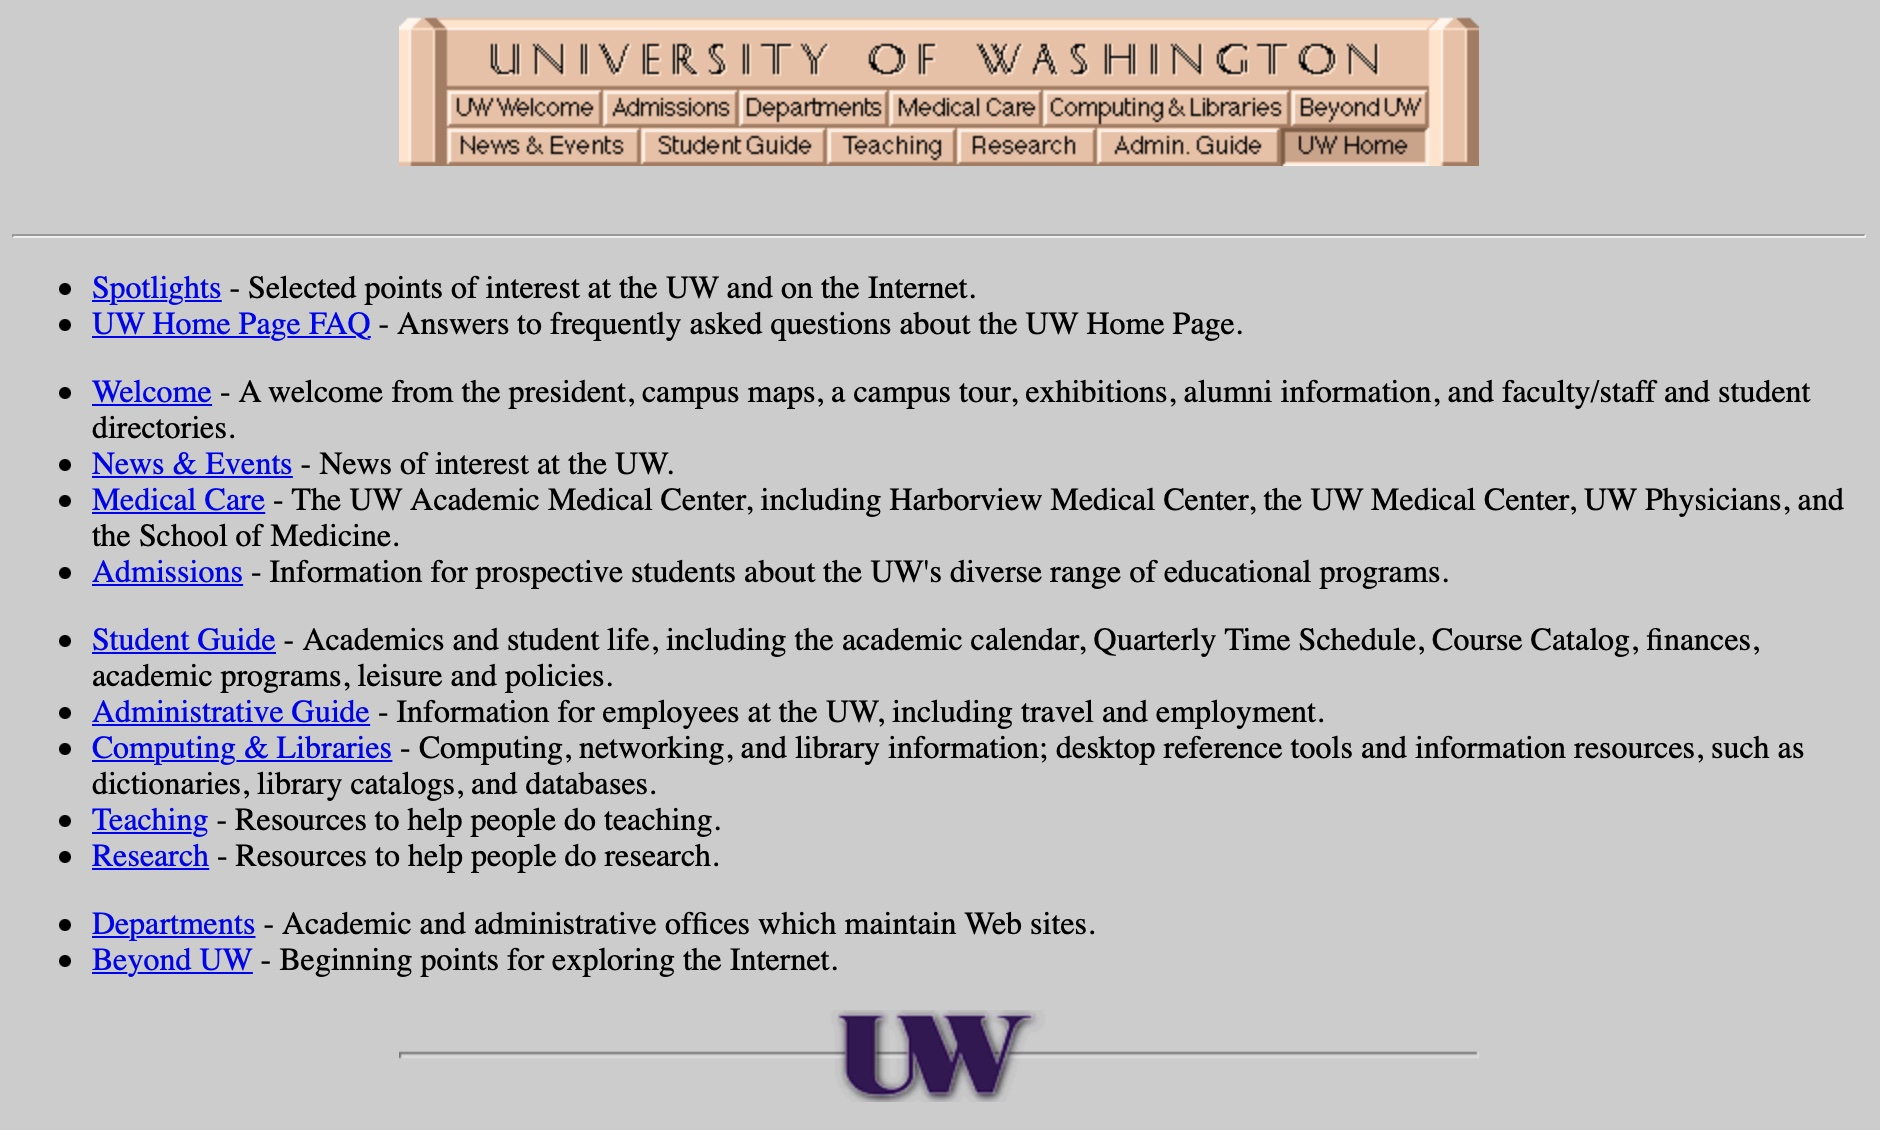 University of Washington Home Page in 1997